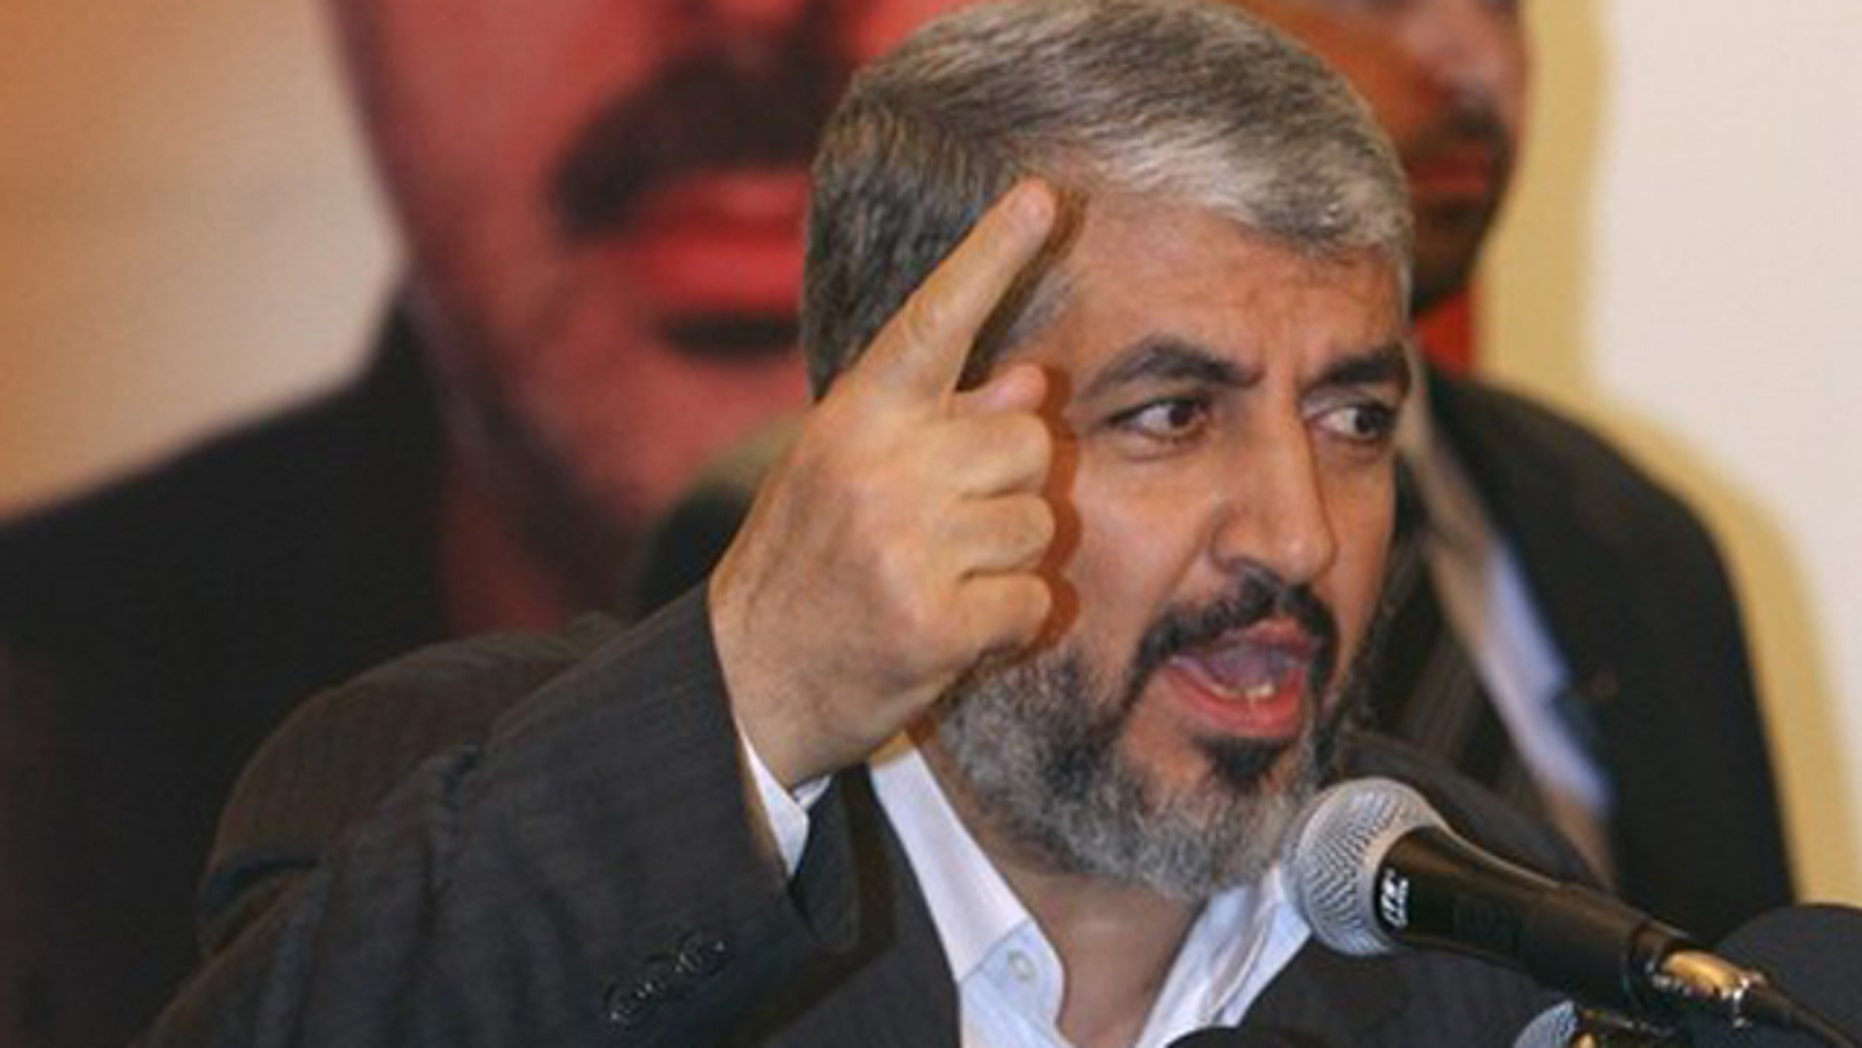 Jan. 31: Hamas leader Khaled Meshaal gives a speech during the funeral procession for Hamas commander Mahmoud al-Mabhouh in Damascus.